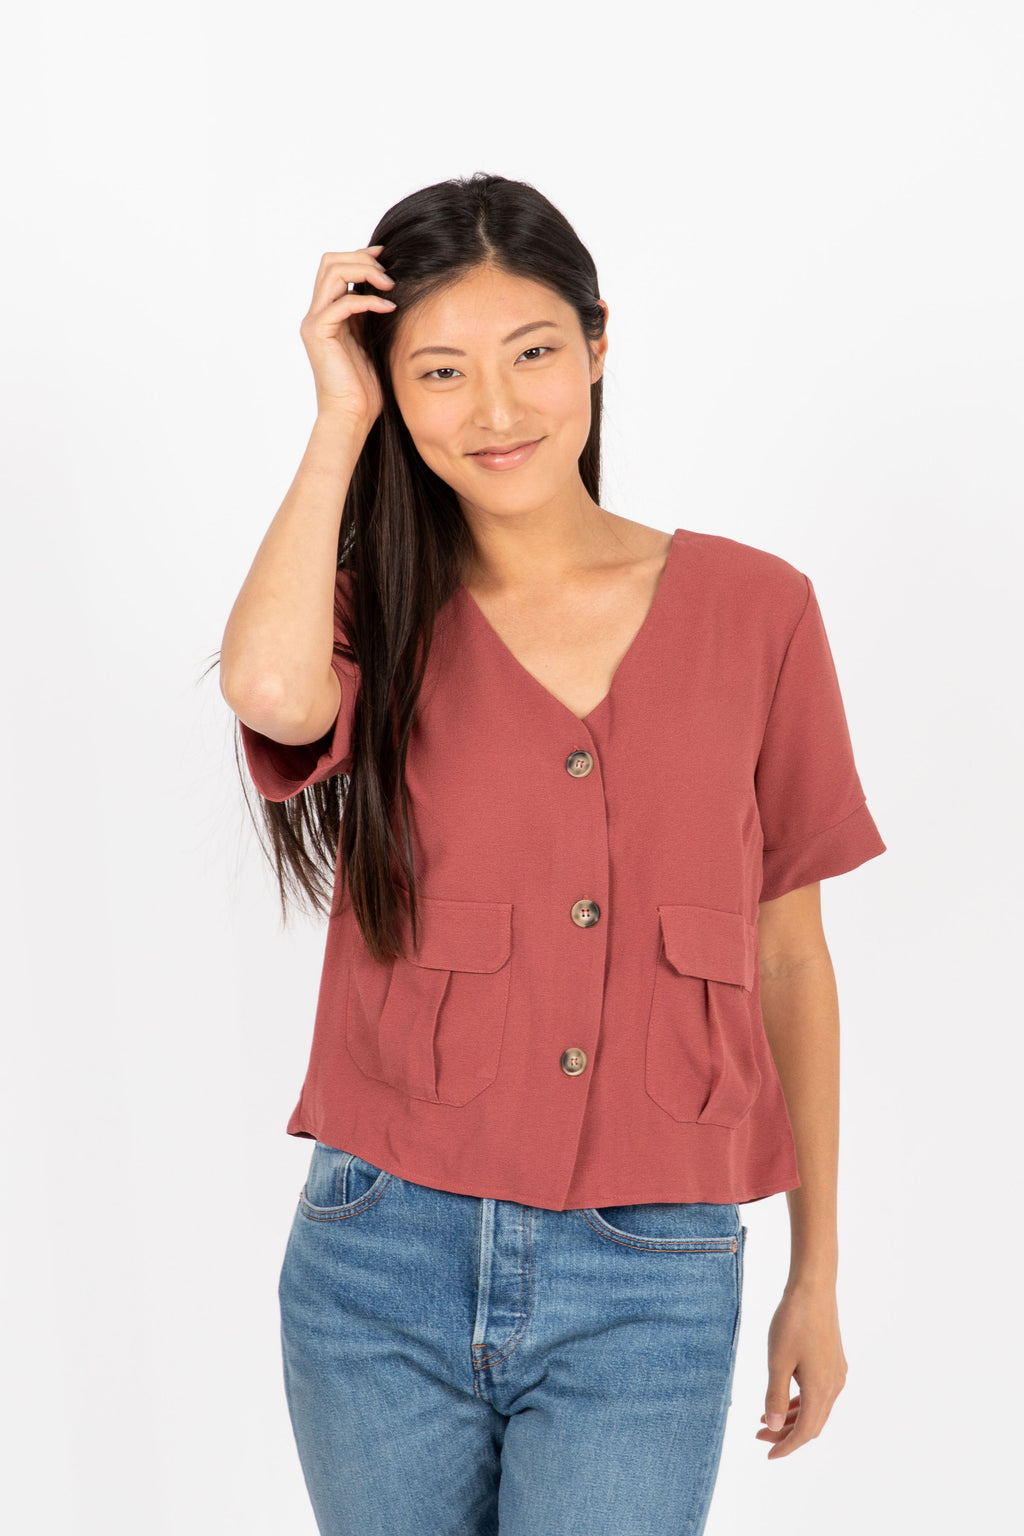 The Roaring Button Up Blouse in Brick- studio shoot; front view